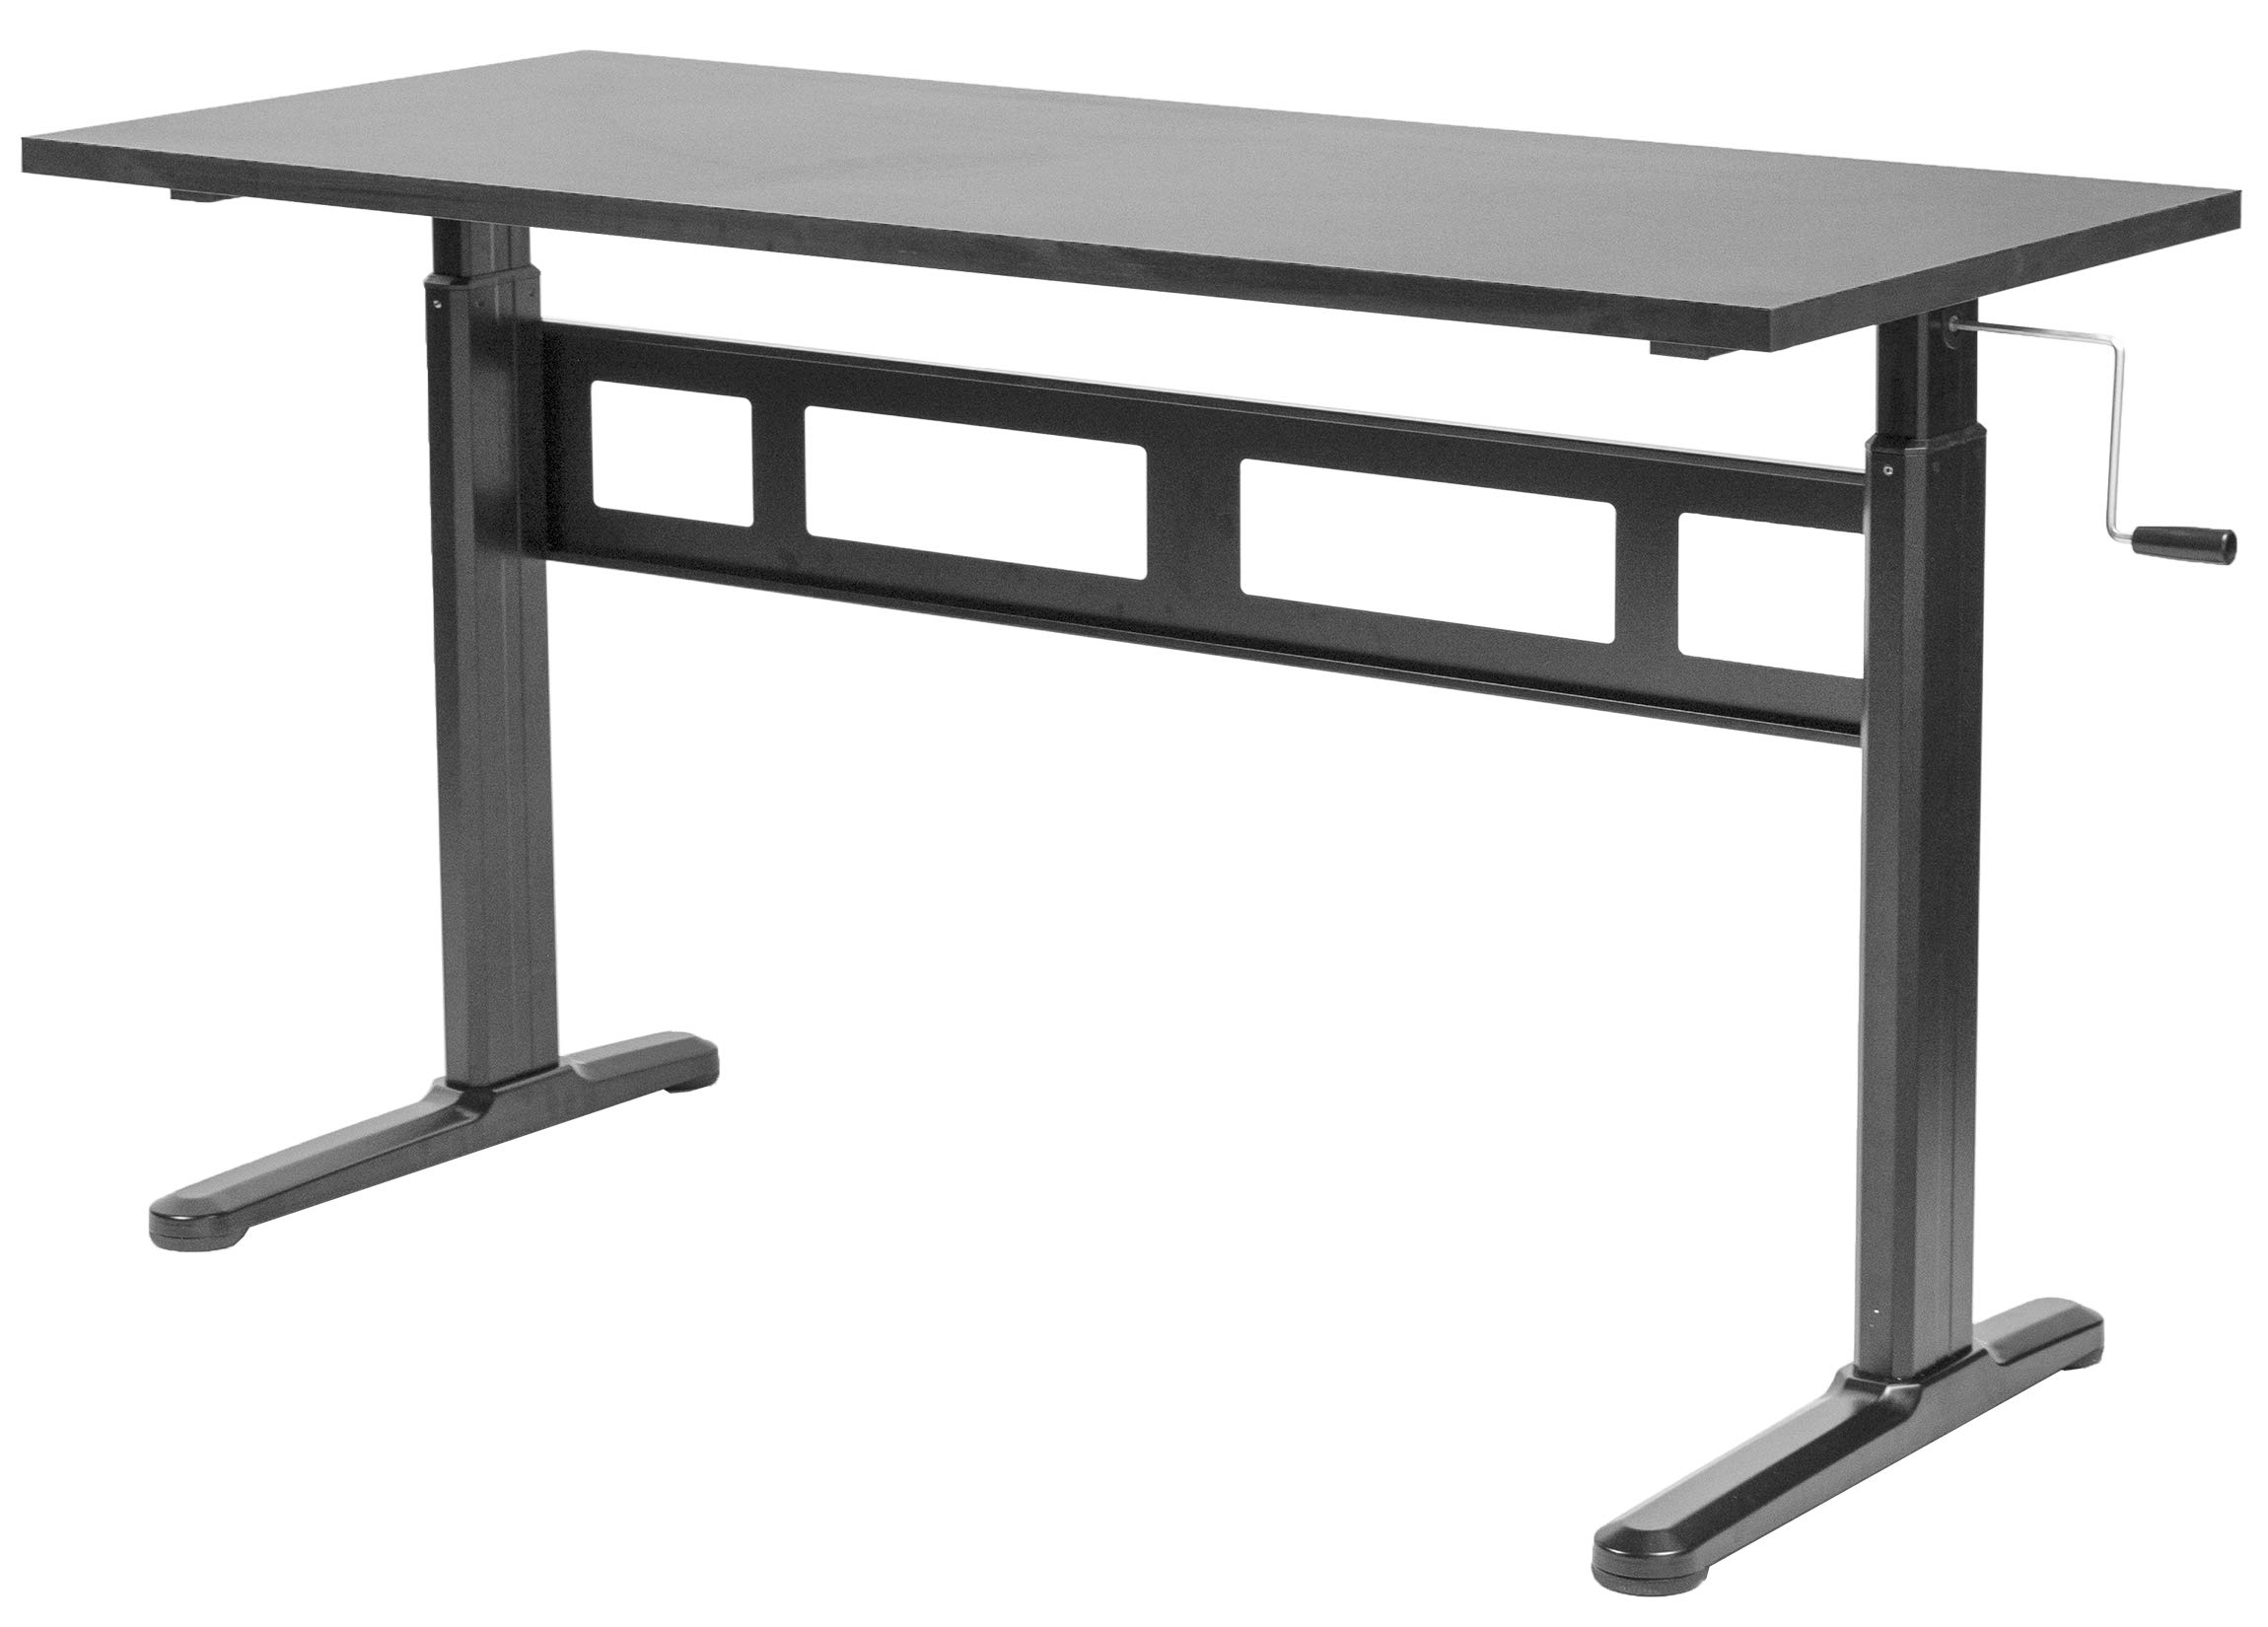 VIVO Black Height Adjustable 55 x 24 inch Table Top with Legs | Complete Sit Stand Desk Workstation with Frame and Desktop (DESK-V100M) by VIVO